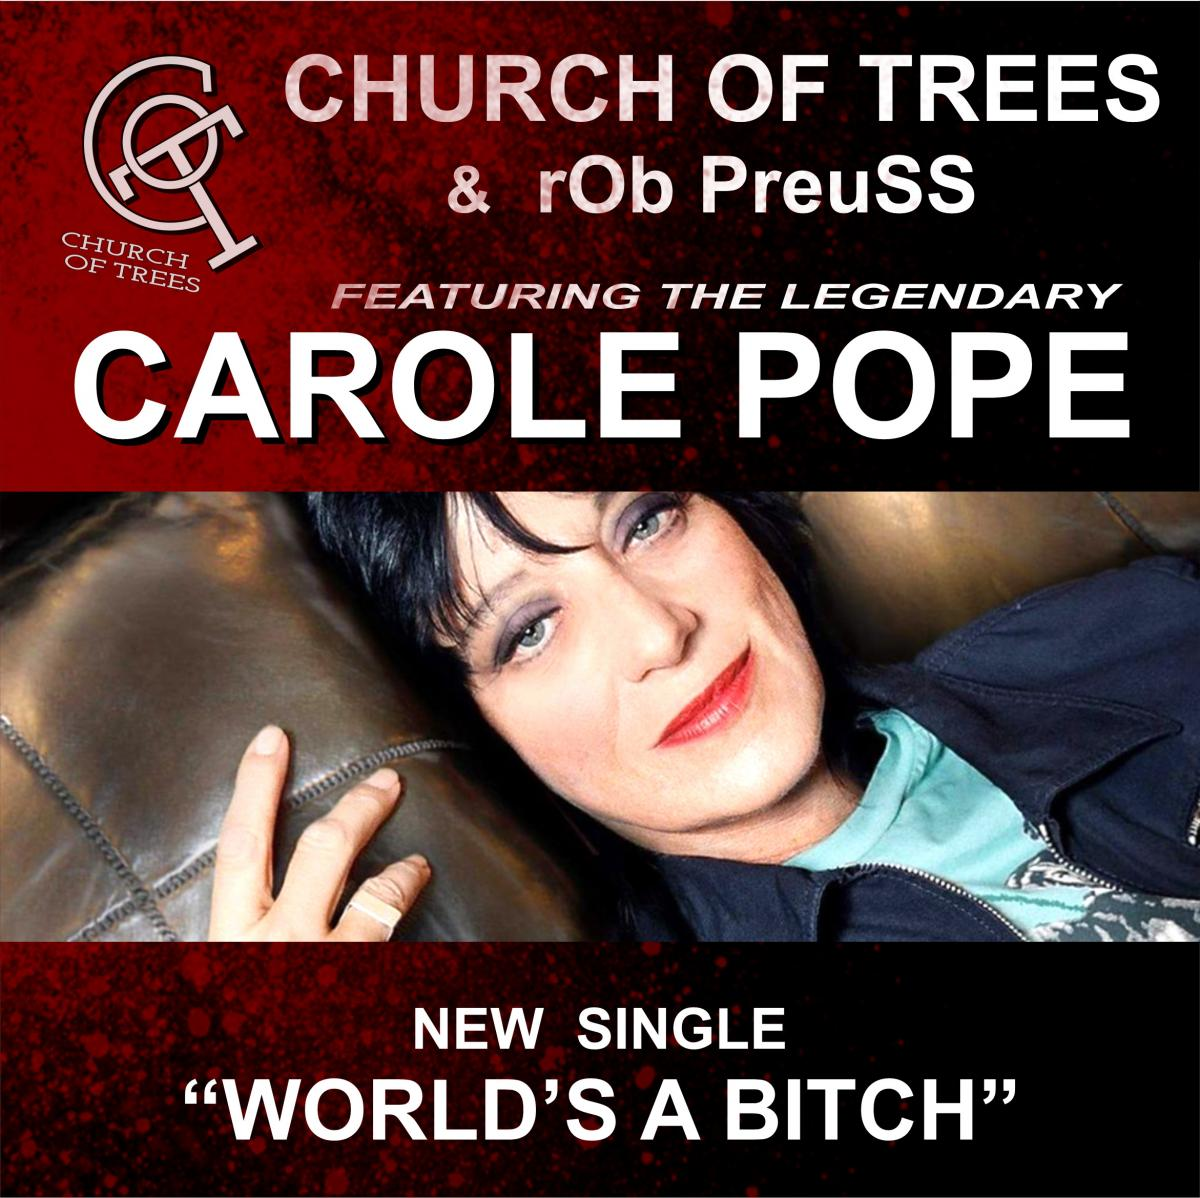 Church of Trees